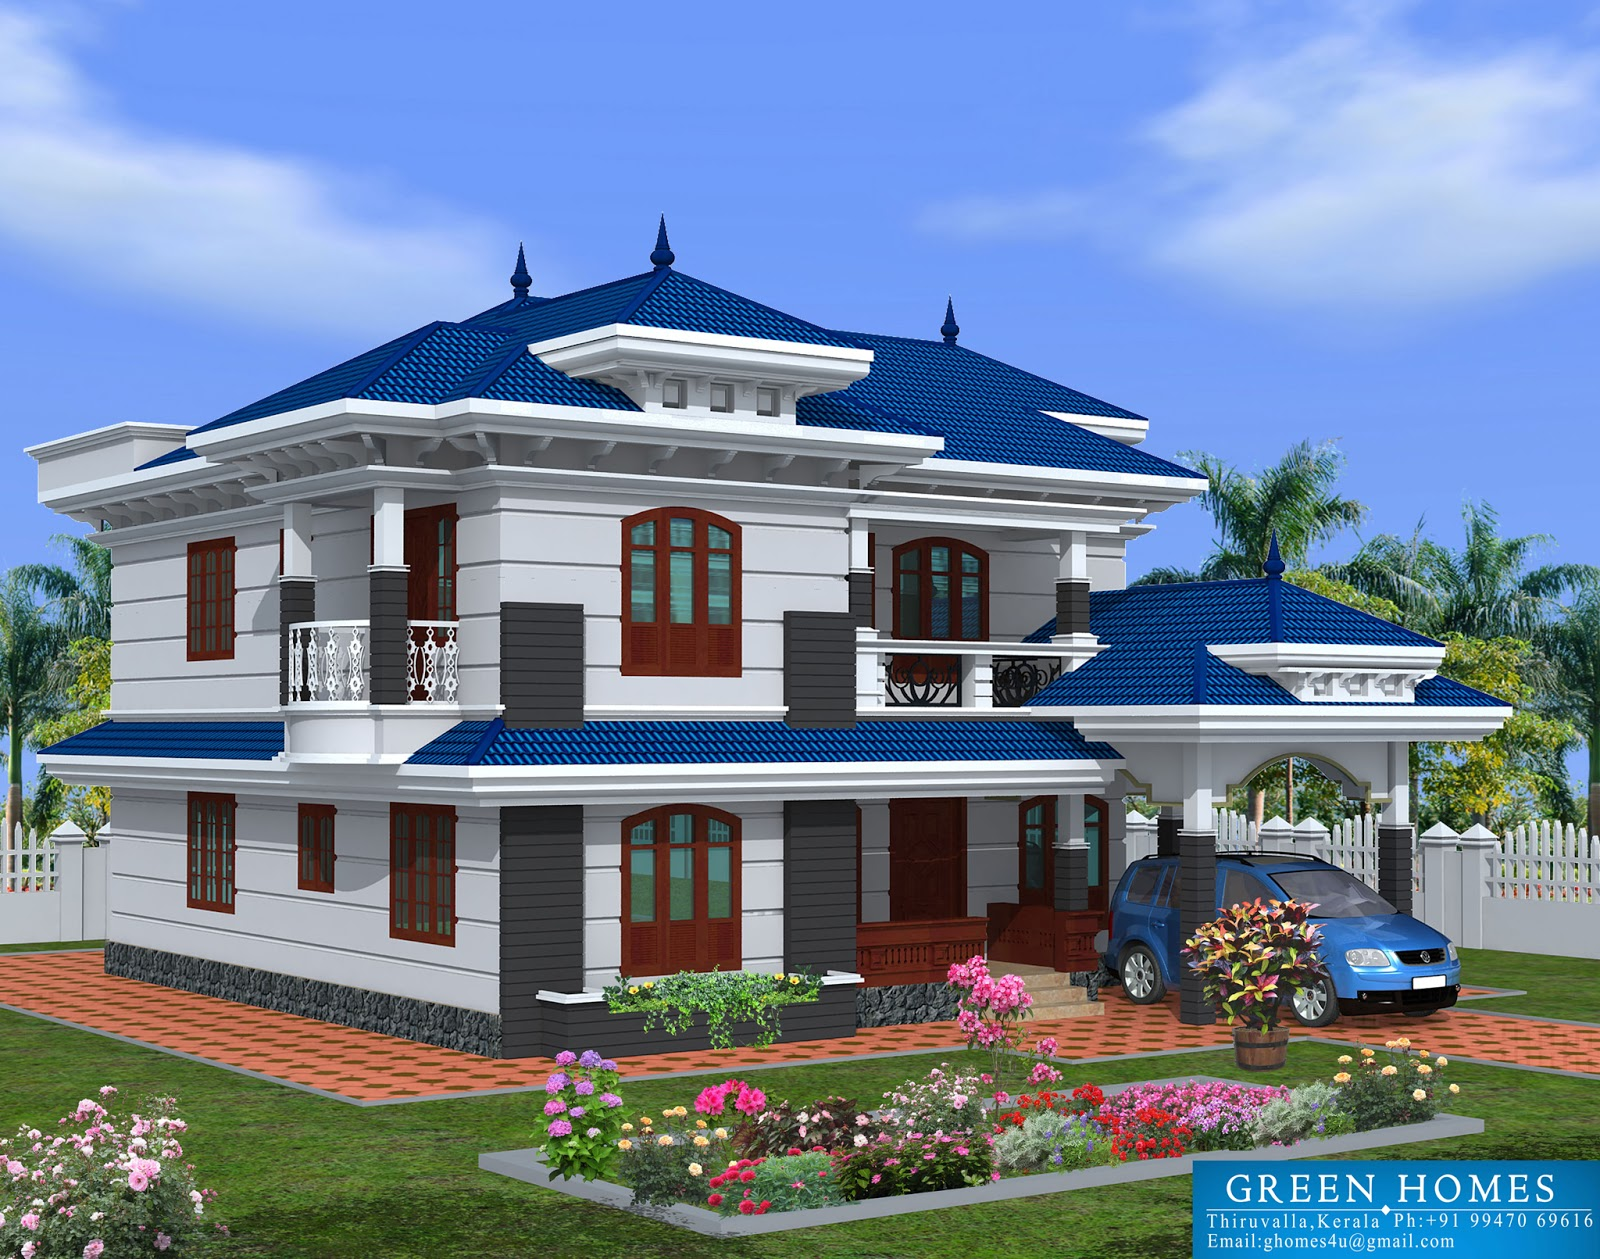 Green homes beautiful kerala home design for Beautiful houses pictures in kerala